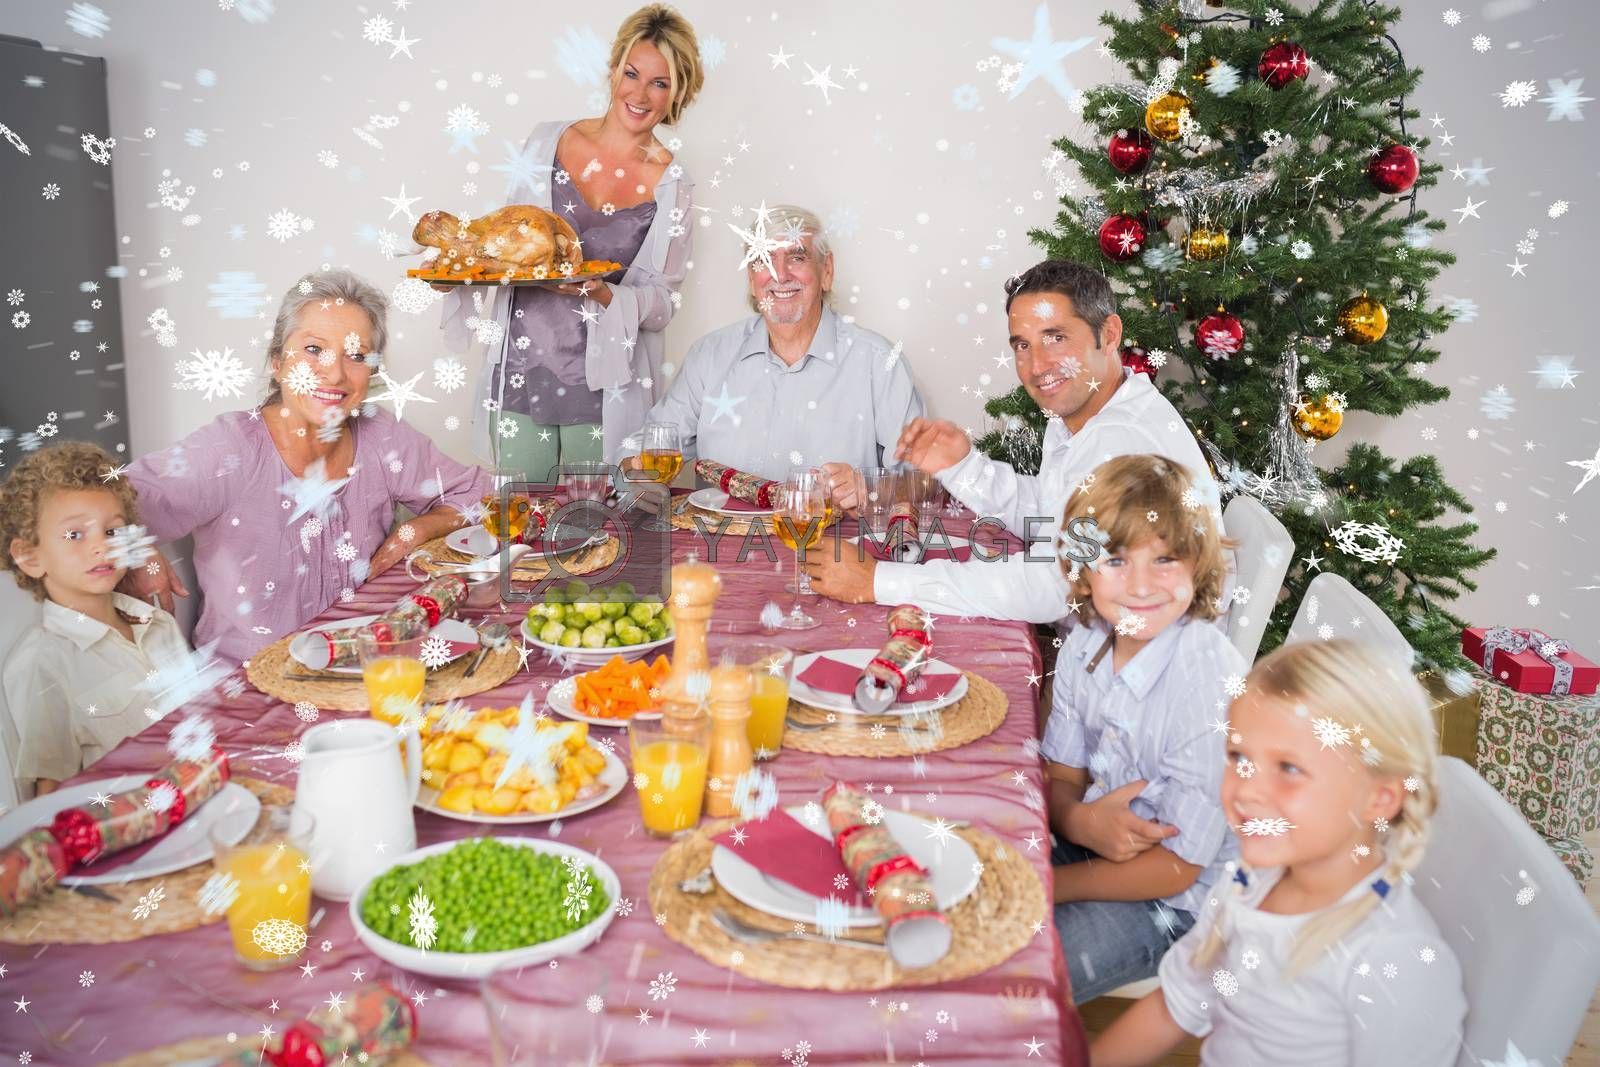 Composite image of Mother bringing turkey to dinner table against snow